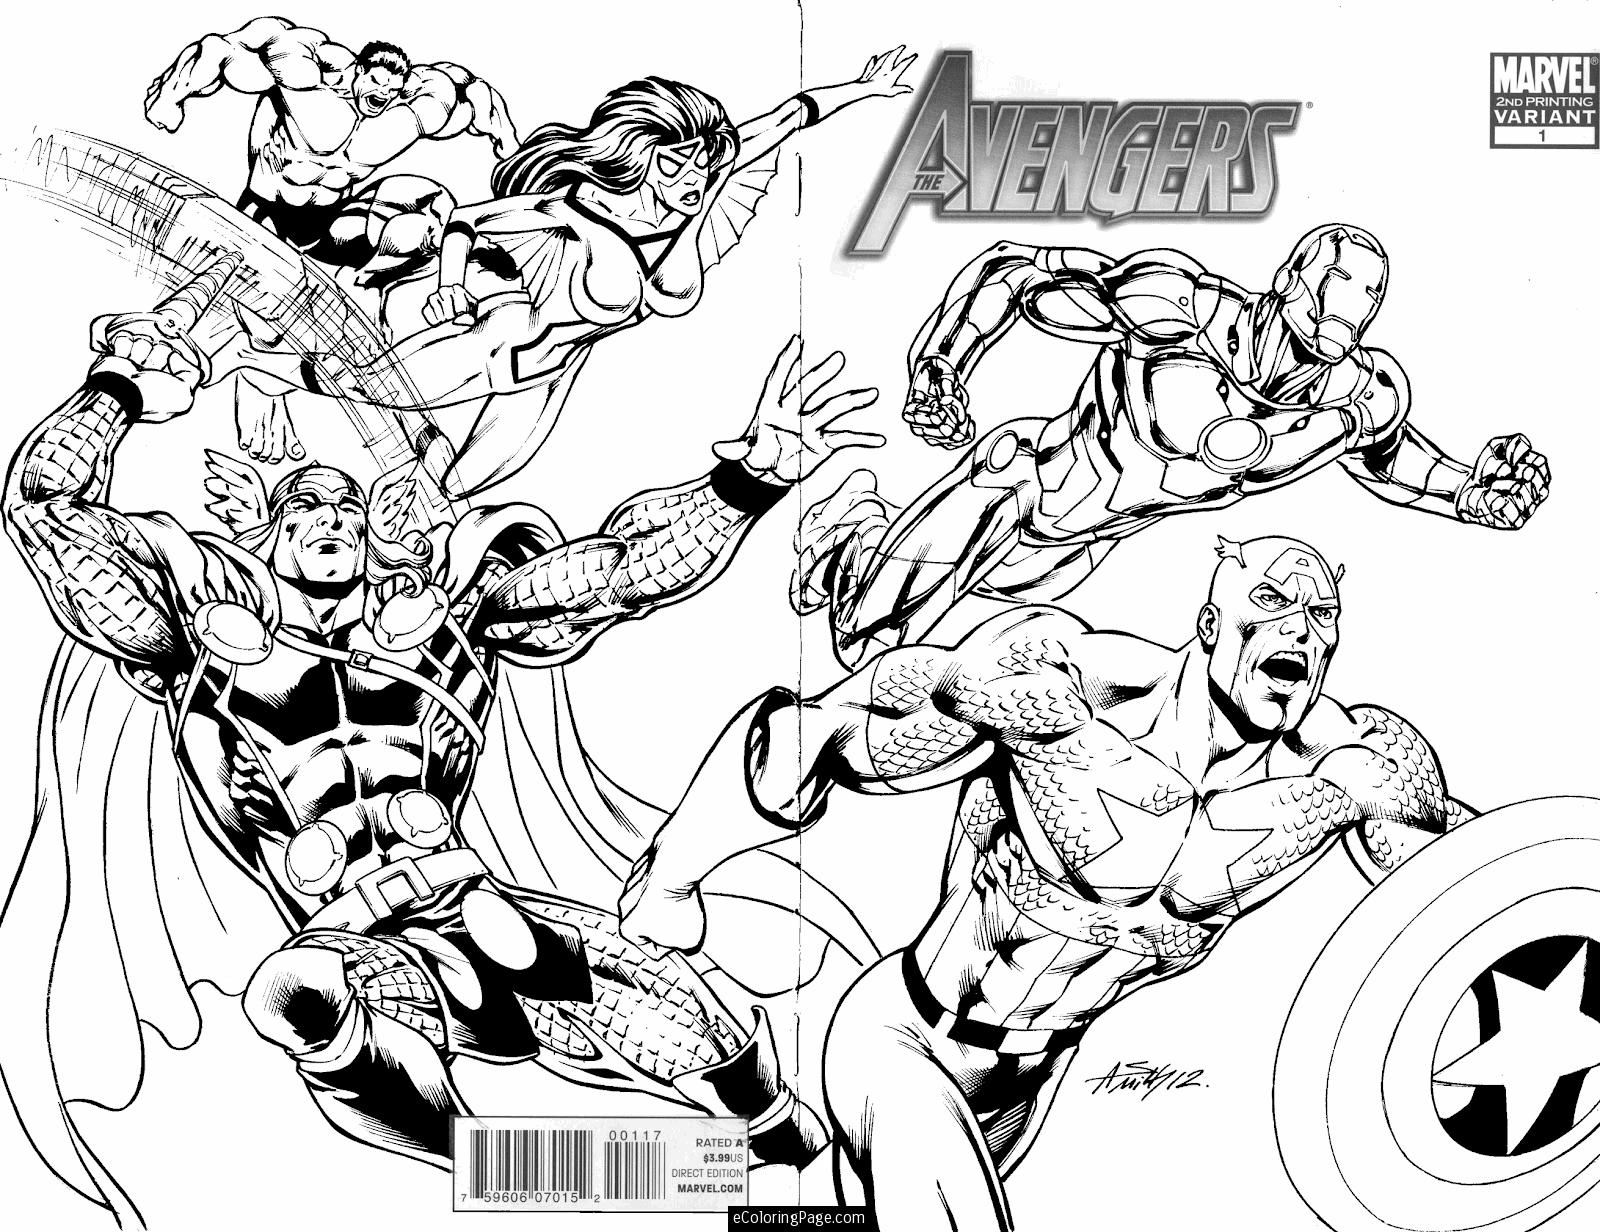 free avengers coloring sheets the avengers team assemble coloring page download free avengers sheets coloring